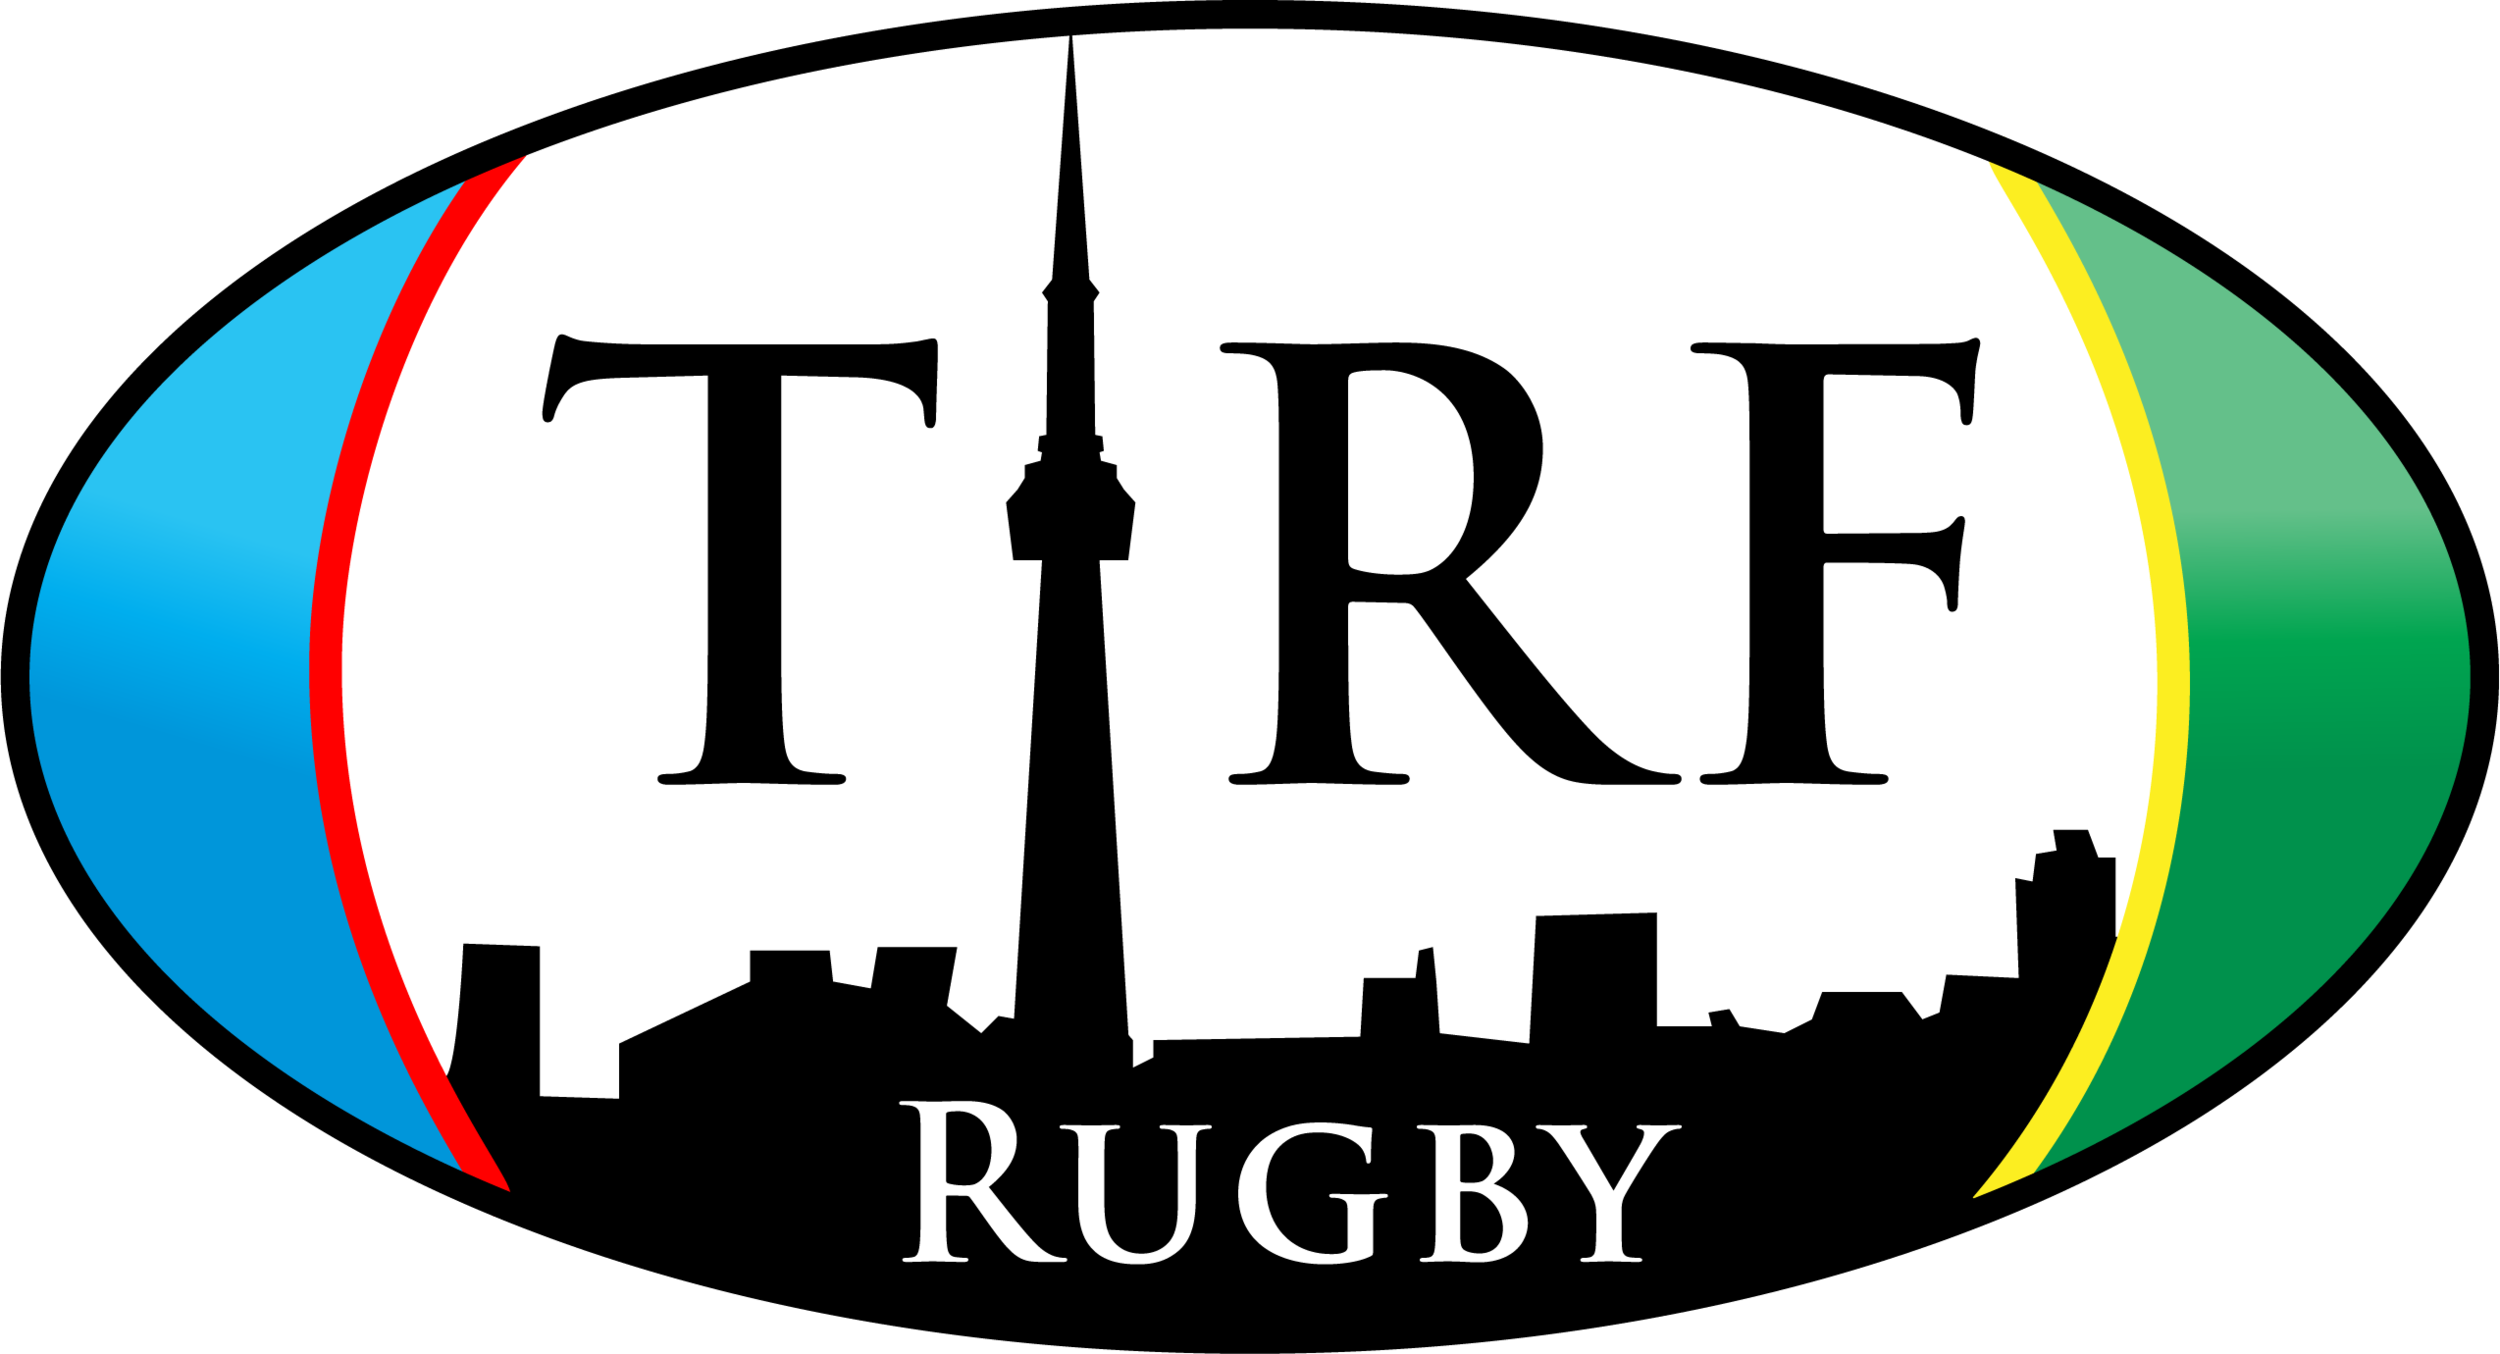 About Us - The Toronto Inner-City Rugby Foundation (TIRF) is a rugby-centered community development organization that uses rugby as a tool for social good. TIRF works to get children, from low-income families, to participate in pro-social development through organized sport. As a registered non-profit, founded in 2011, TIRF builds community through rugby in 31 of Toronto's underserved, neighbourhood improvements areas (NIA) and emerging neighbourhoods. TIRF sanctioned by Rugby Canada and Rugby Ontario, works in partnership with more than 200 community partners. Through programming and services, TIRF reduces the financial, geographical, and cultural barriers that prevent children and youth from participating in sport.For more information about who we are and what we do, please visit our website at https://tirfrugby.ca/